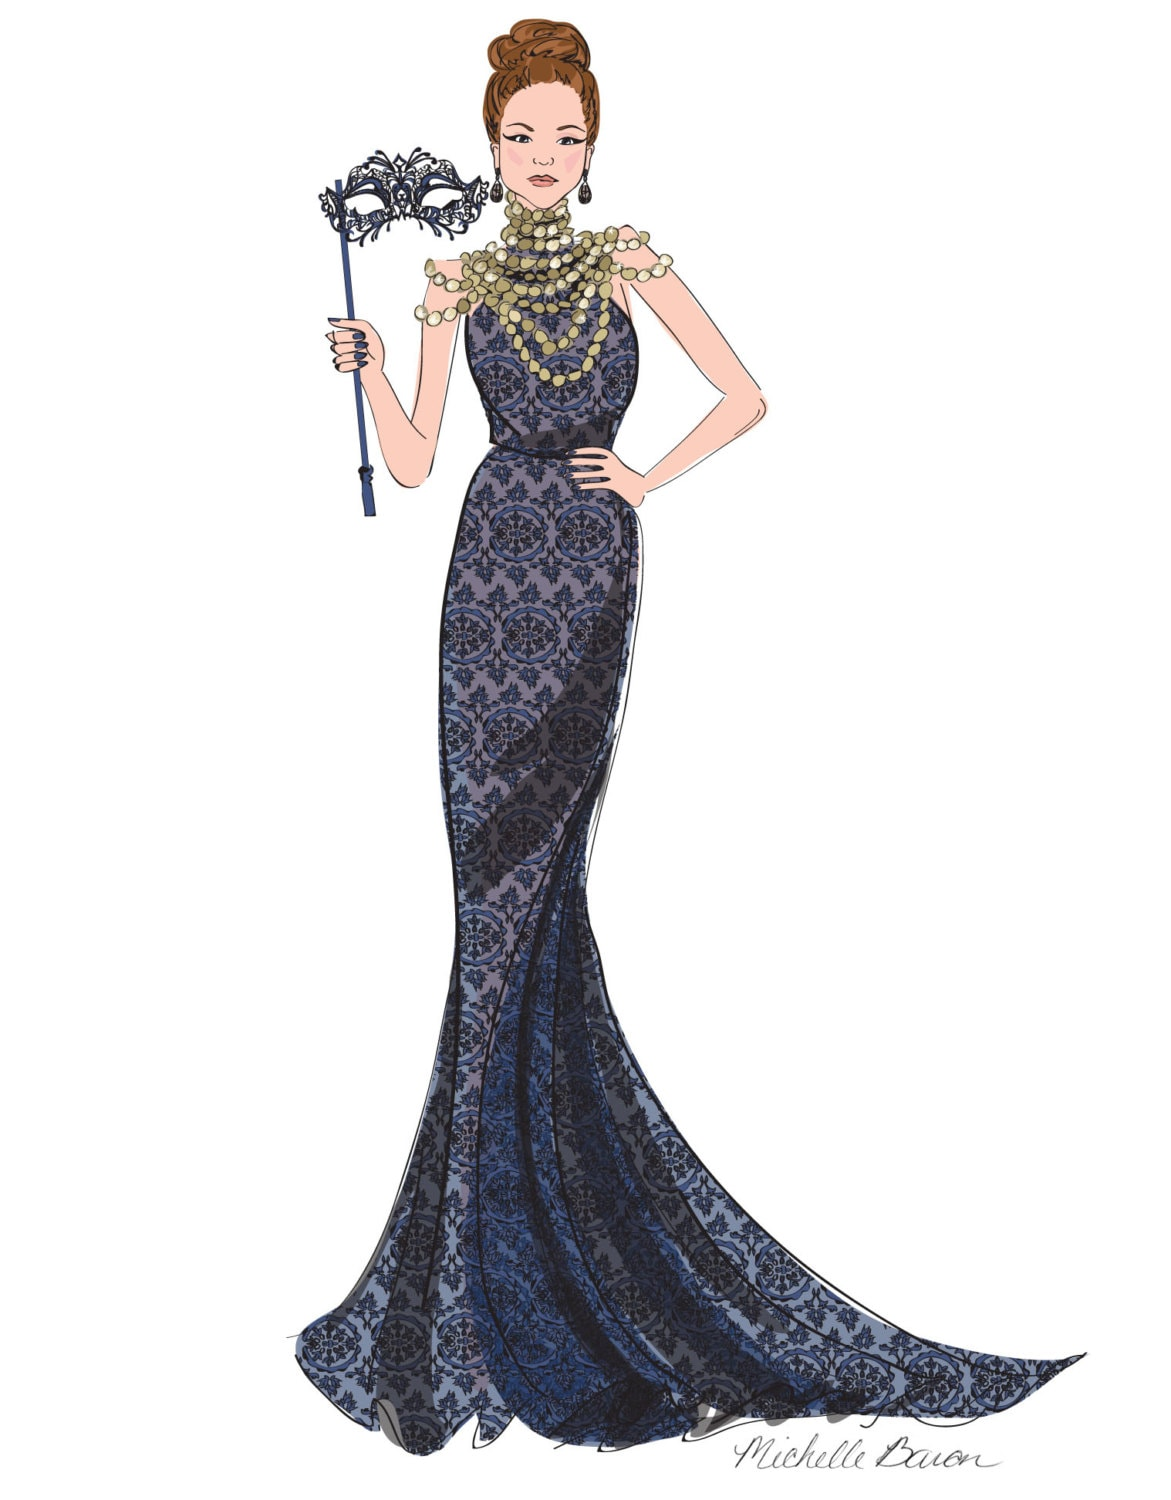 Fashion Illustration Masquerade Ball Ball Gown Elegant